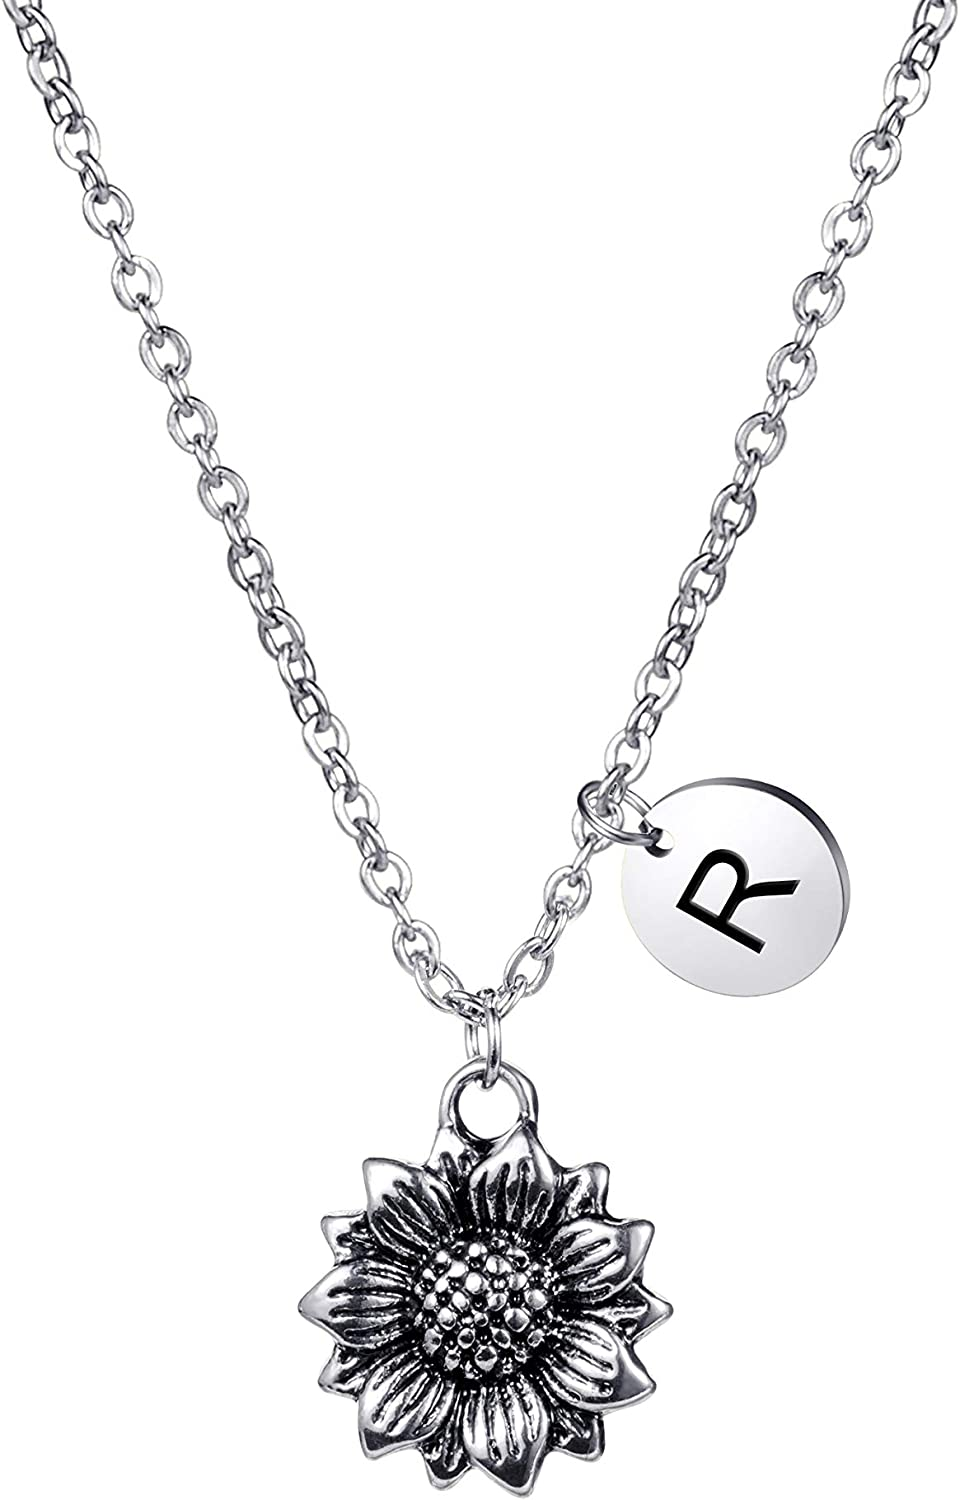 Joycuff Dainty Antique Silver Sunflower Necklace Personalized Cute Monogram Pendant Initial Charm Letter Engraved Inspirational Gifts for Her Women Teen Girl